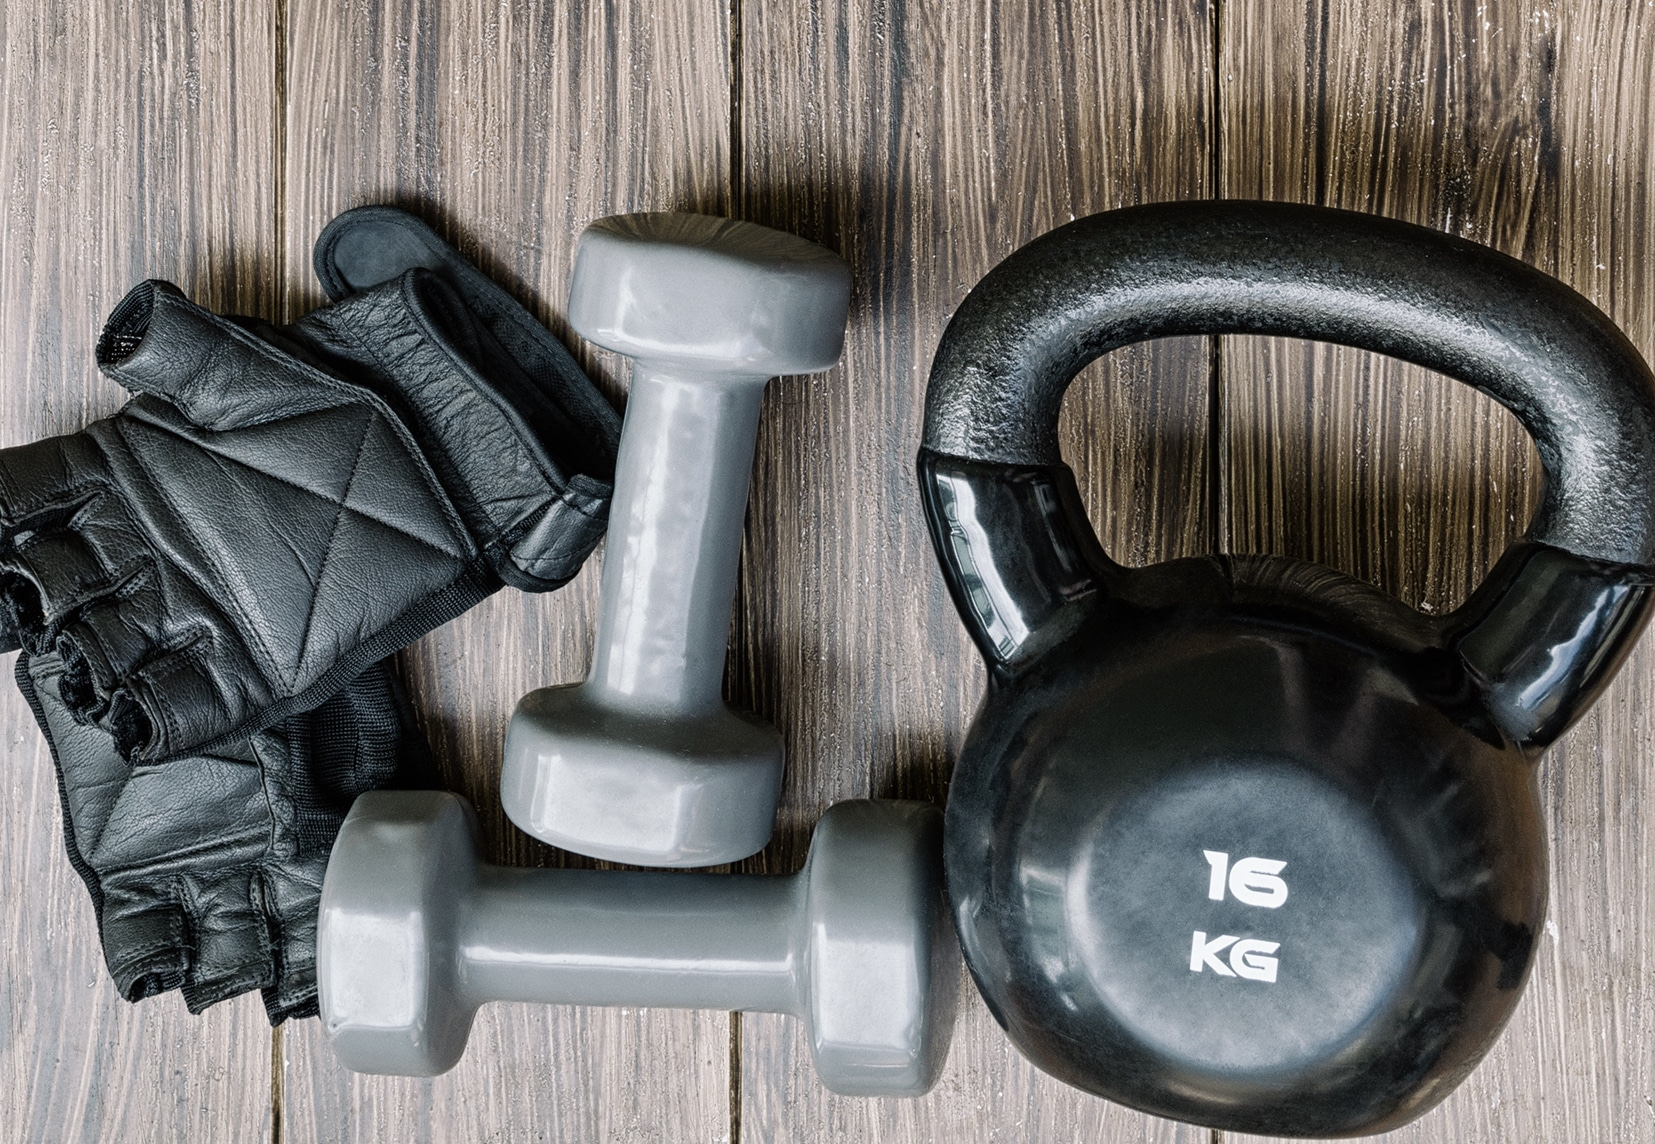 Gray dumbbells and black kettlebell with workout gloves on wood background